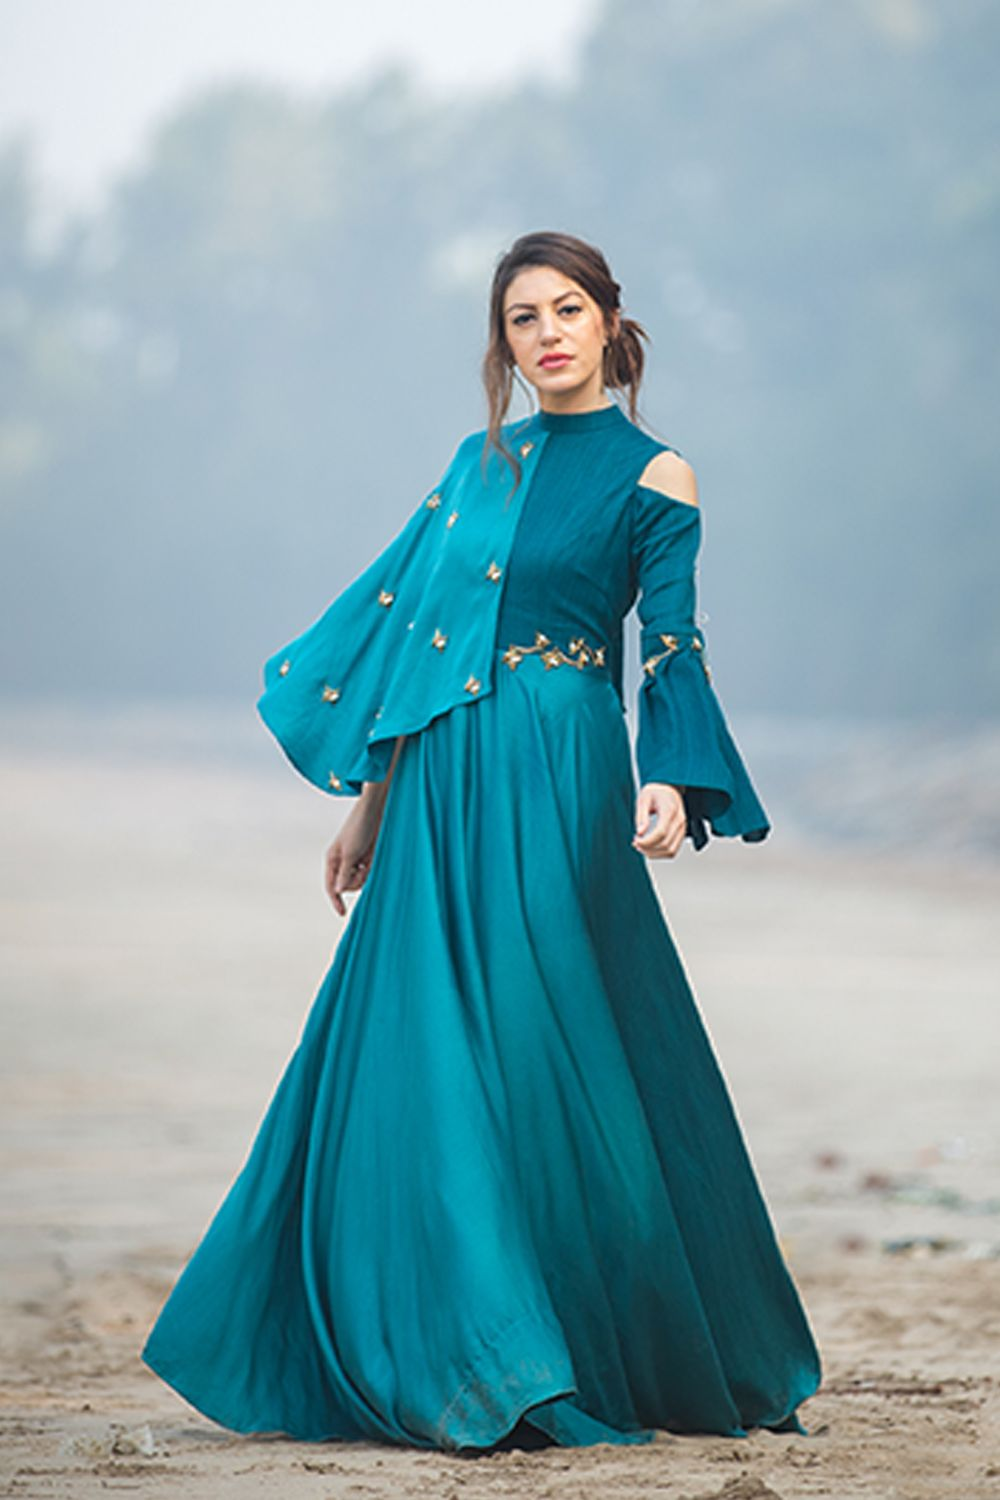 payal jeswani, collar bell sleeve dress. available online at